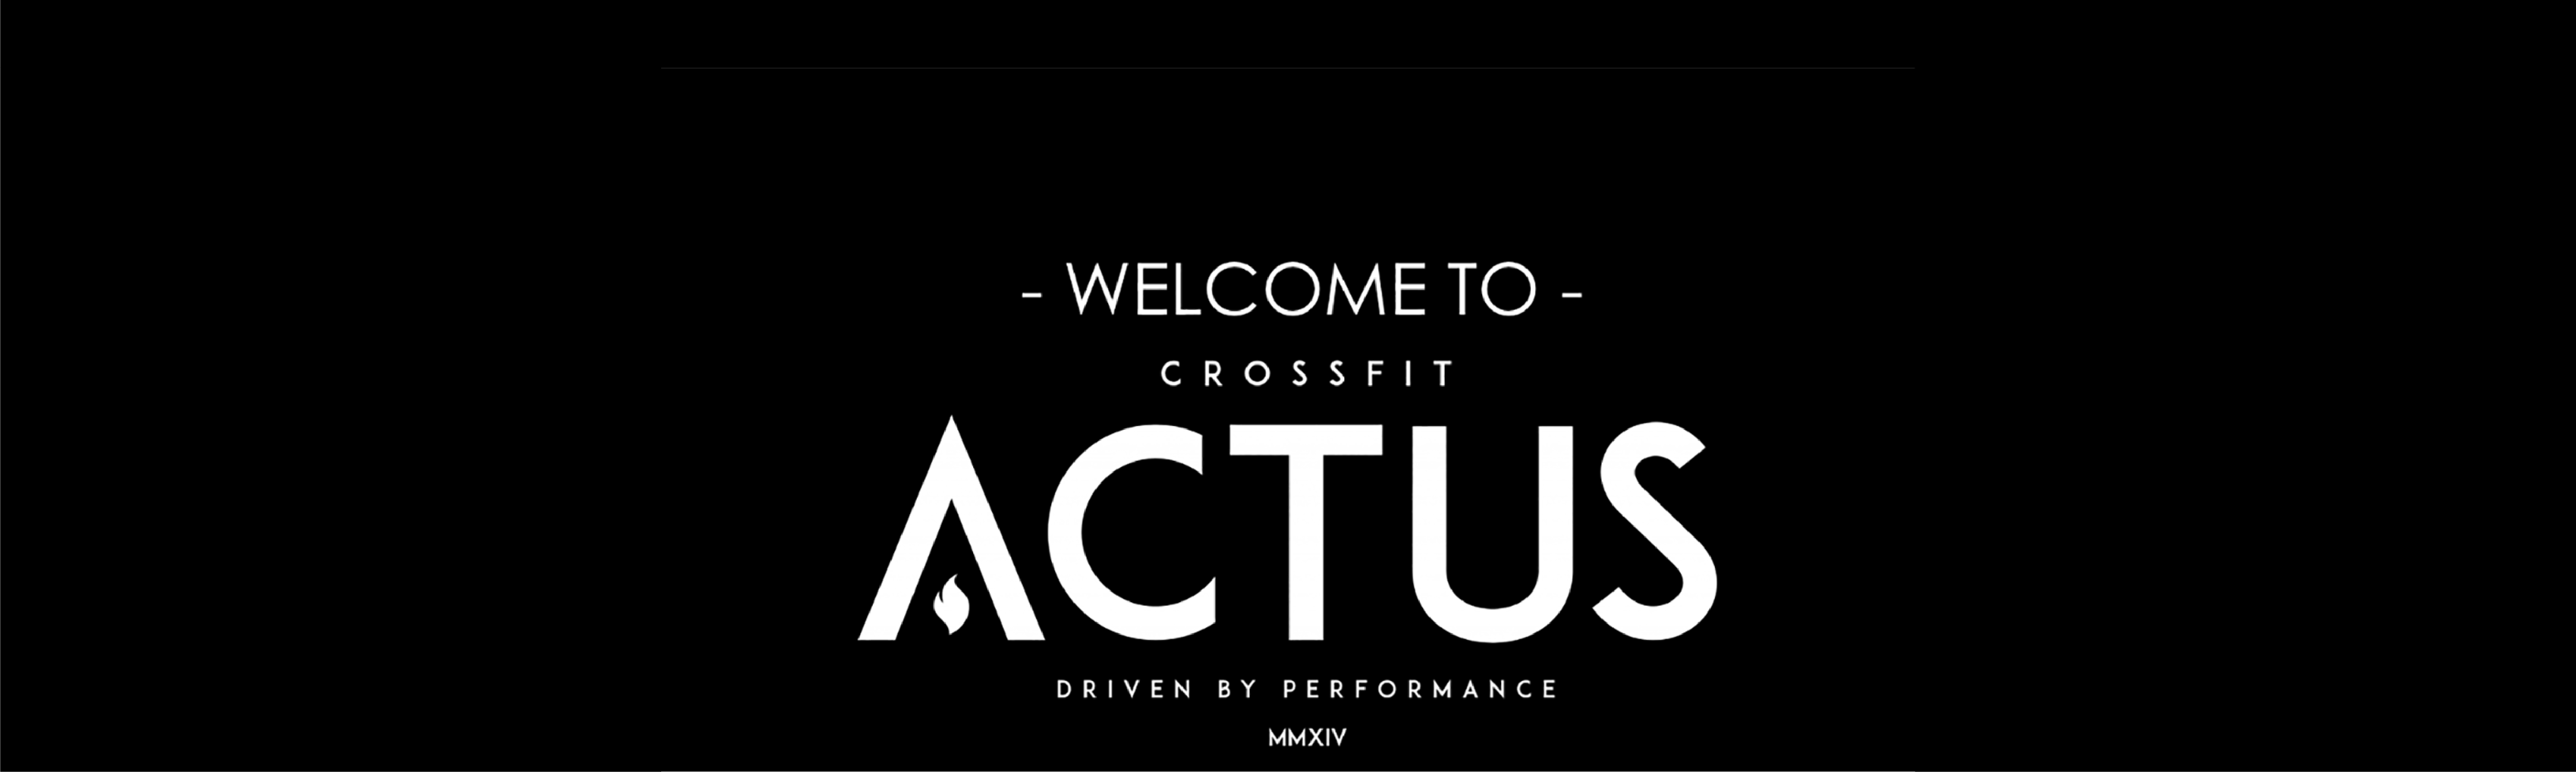 WELCOME-CrossFitACTUS-resize-7